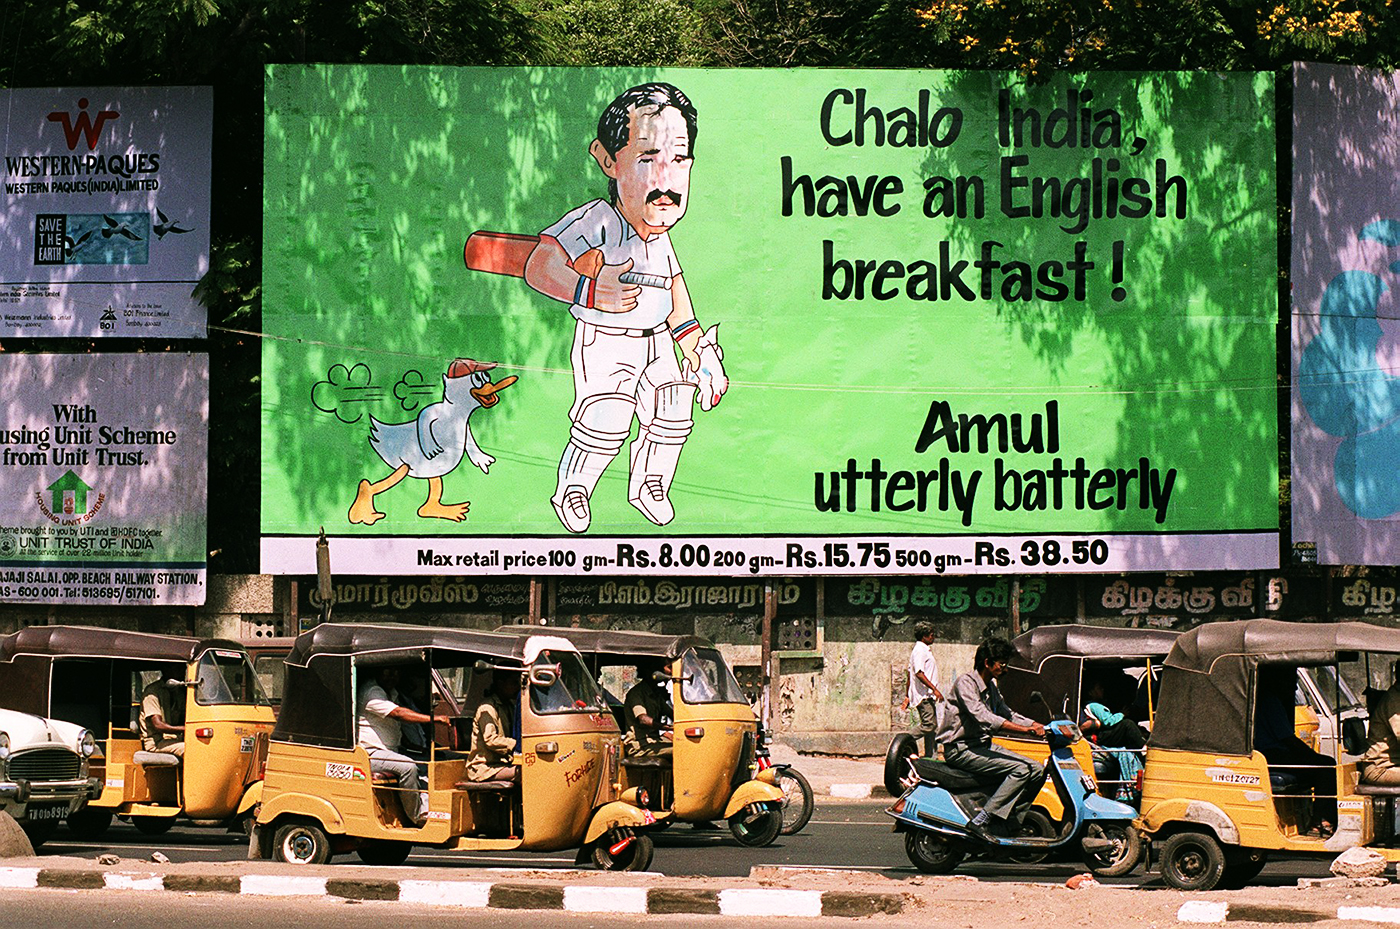 Madras, February 1993: Amul, the dairy giant known for incorporating current affairs into its advertising, with one of the earlier cricket ads in India